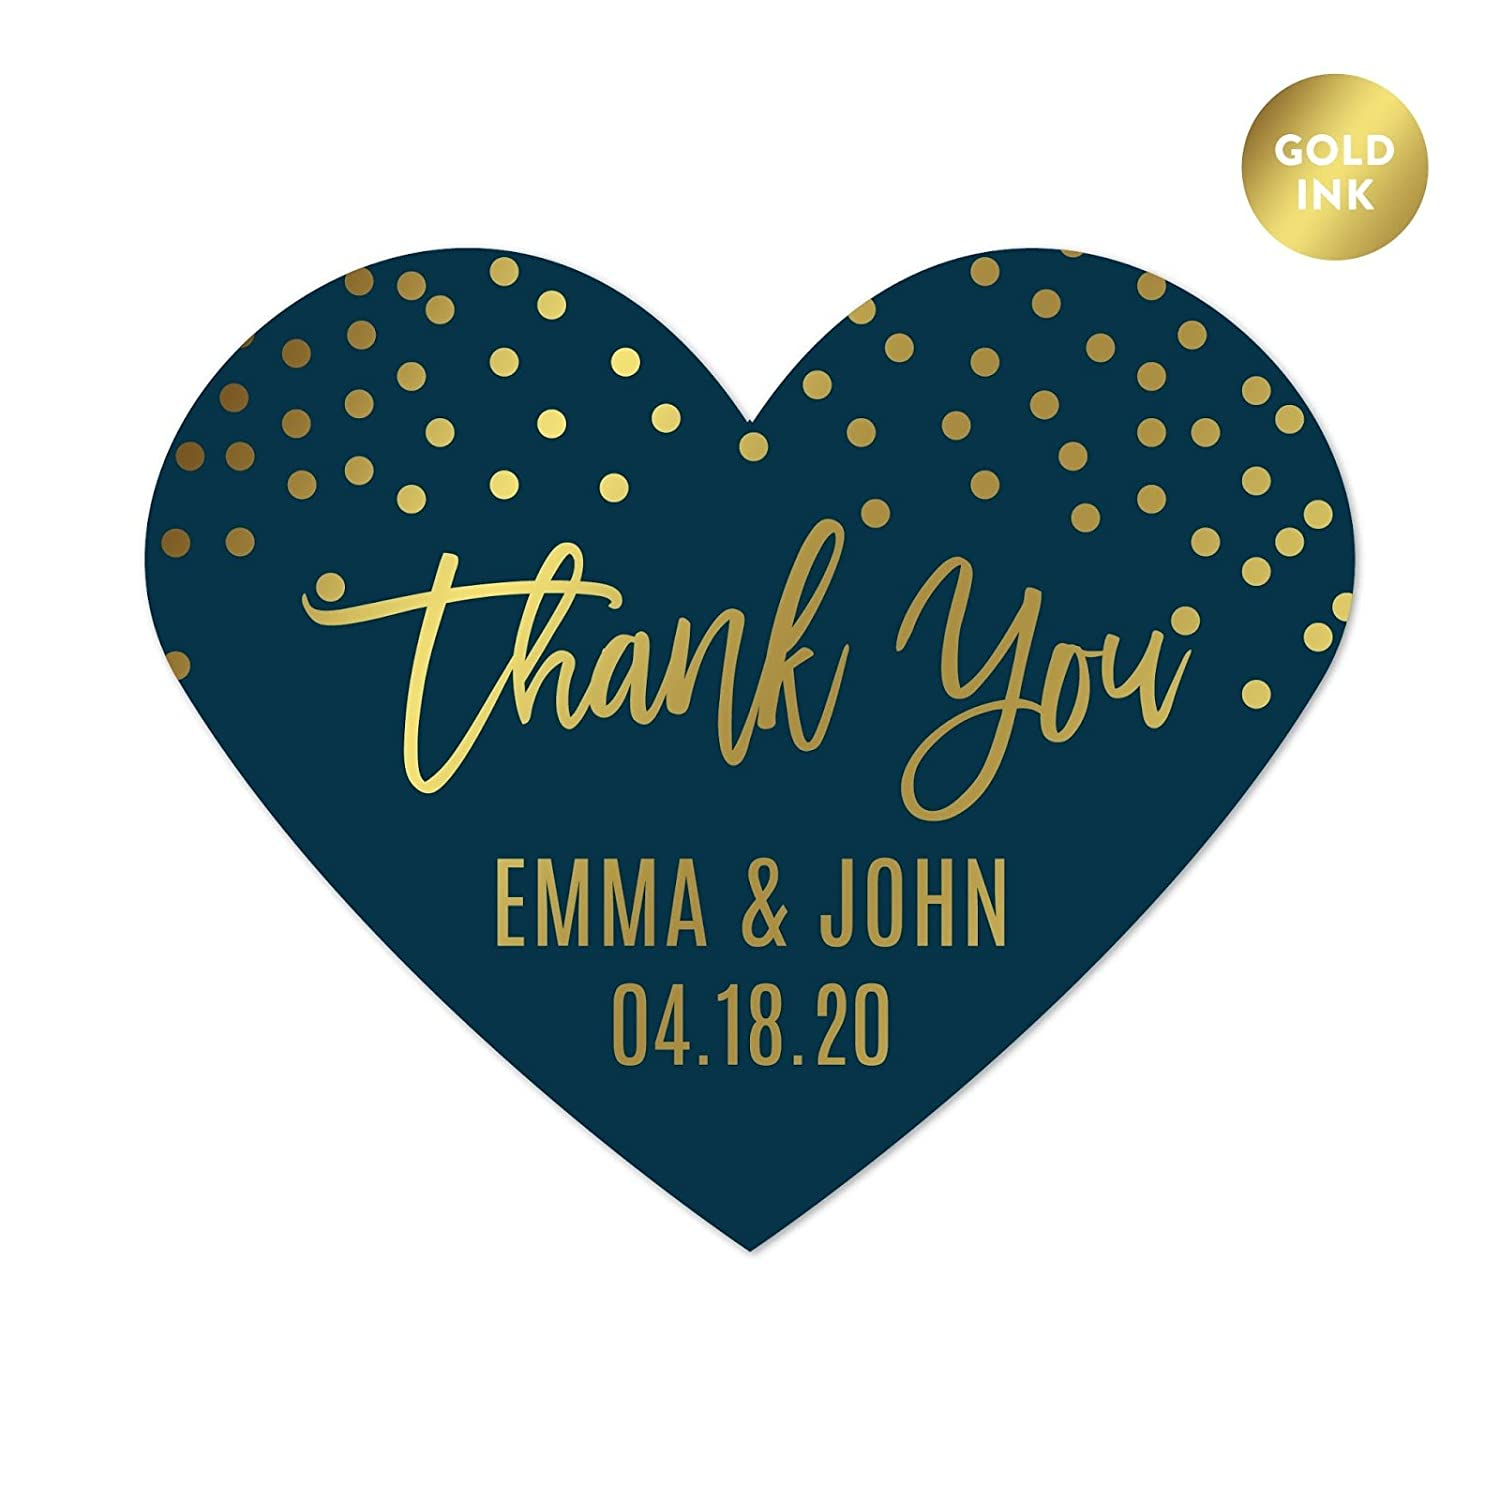 Andaz Press Navy Blue with Gold Metallic Ink Wedding Party Collection, Personalized Heart Label Stickers, Thank You Anna Steve January 4, 2020, 75-Pack, Custom Names and Date